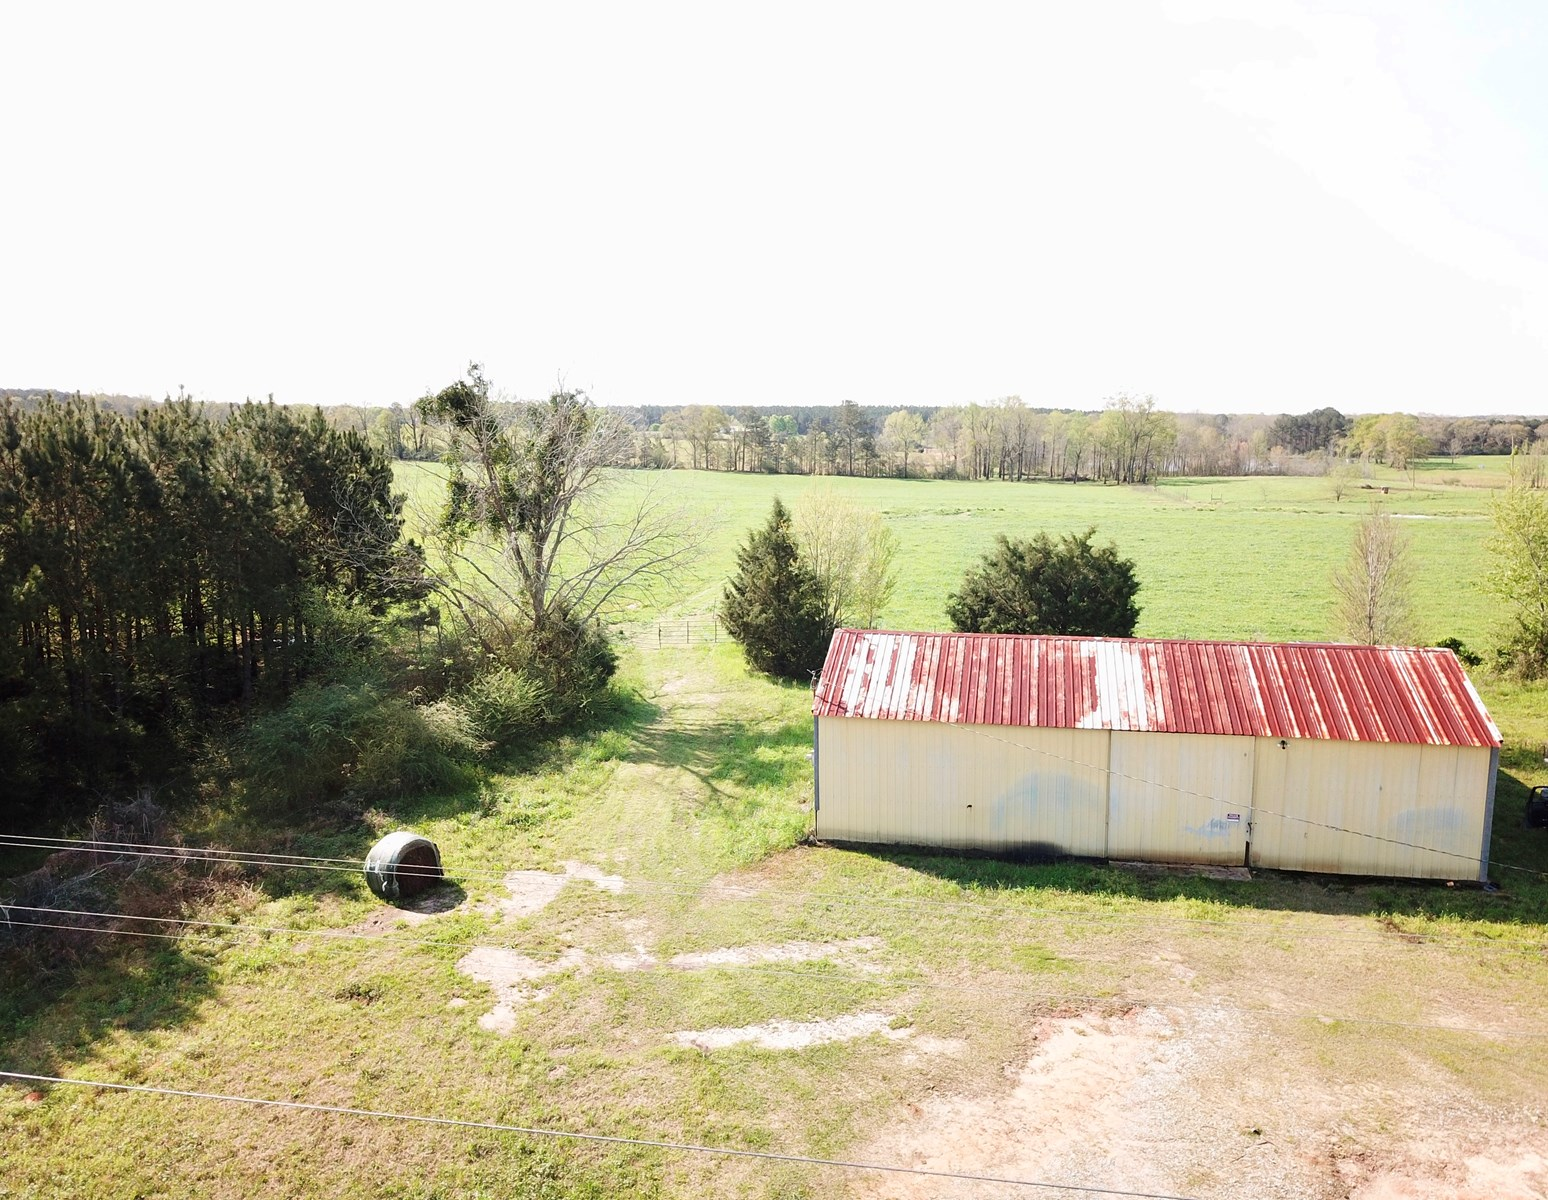 PASTURE LAND FOR SALE CHANCELLER, ALABAMA SOUTH ENTERPRISE